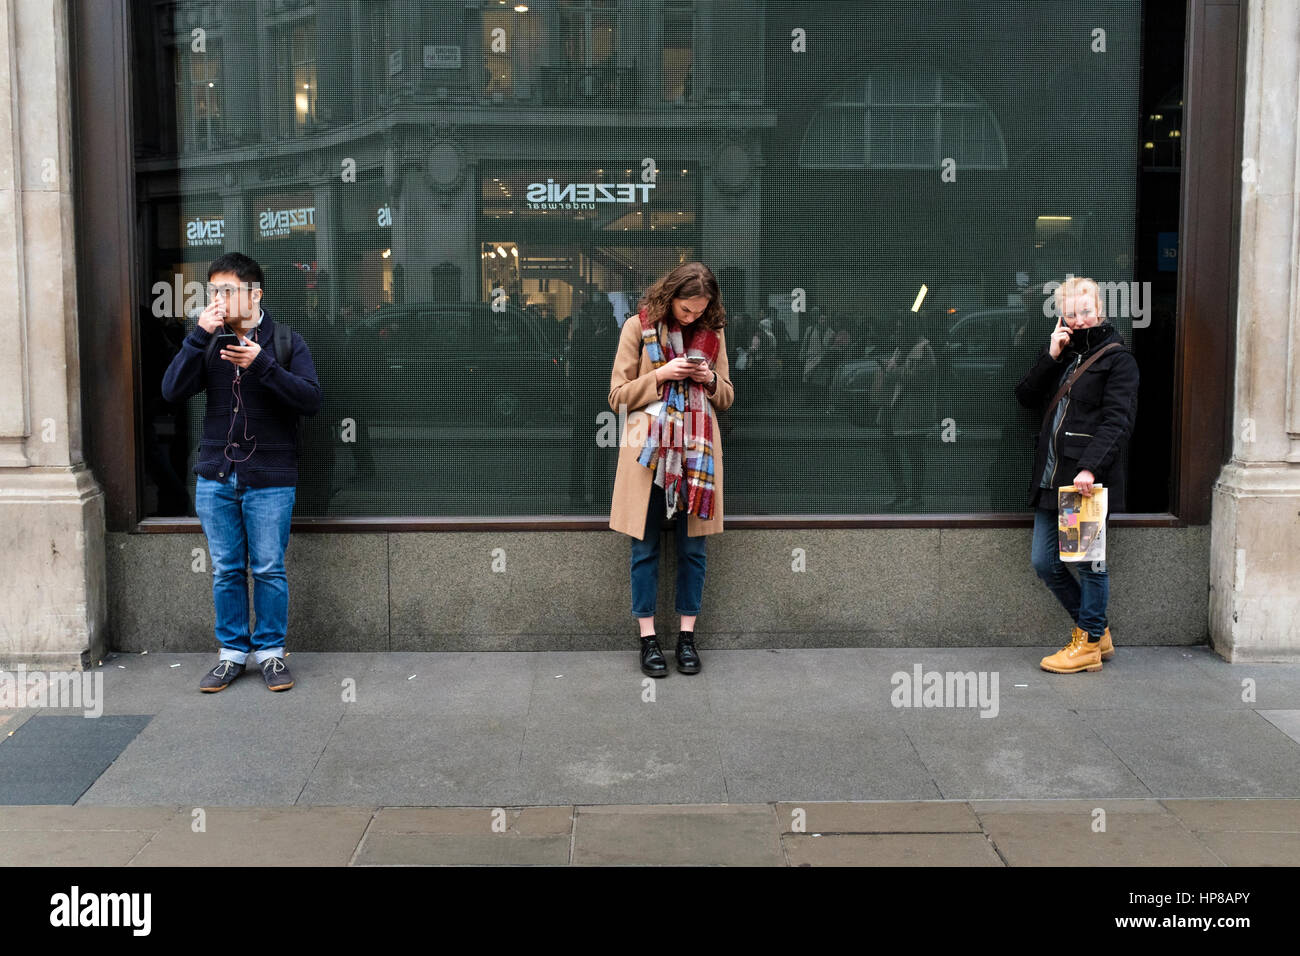 Three young people using mobile phones in street - Stock Image